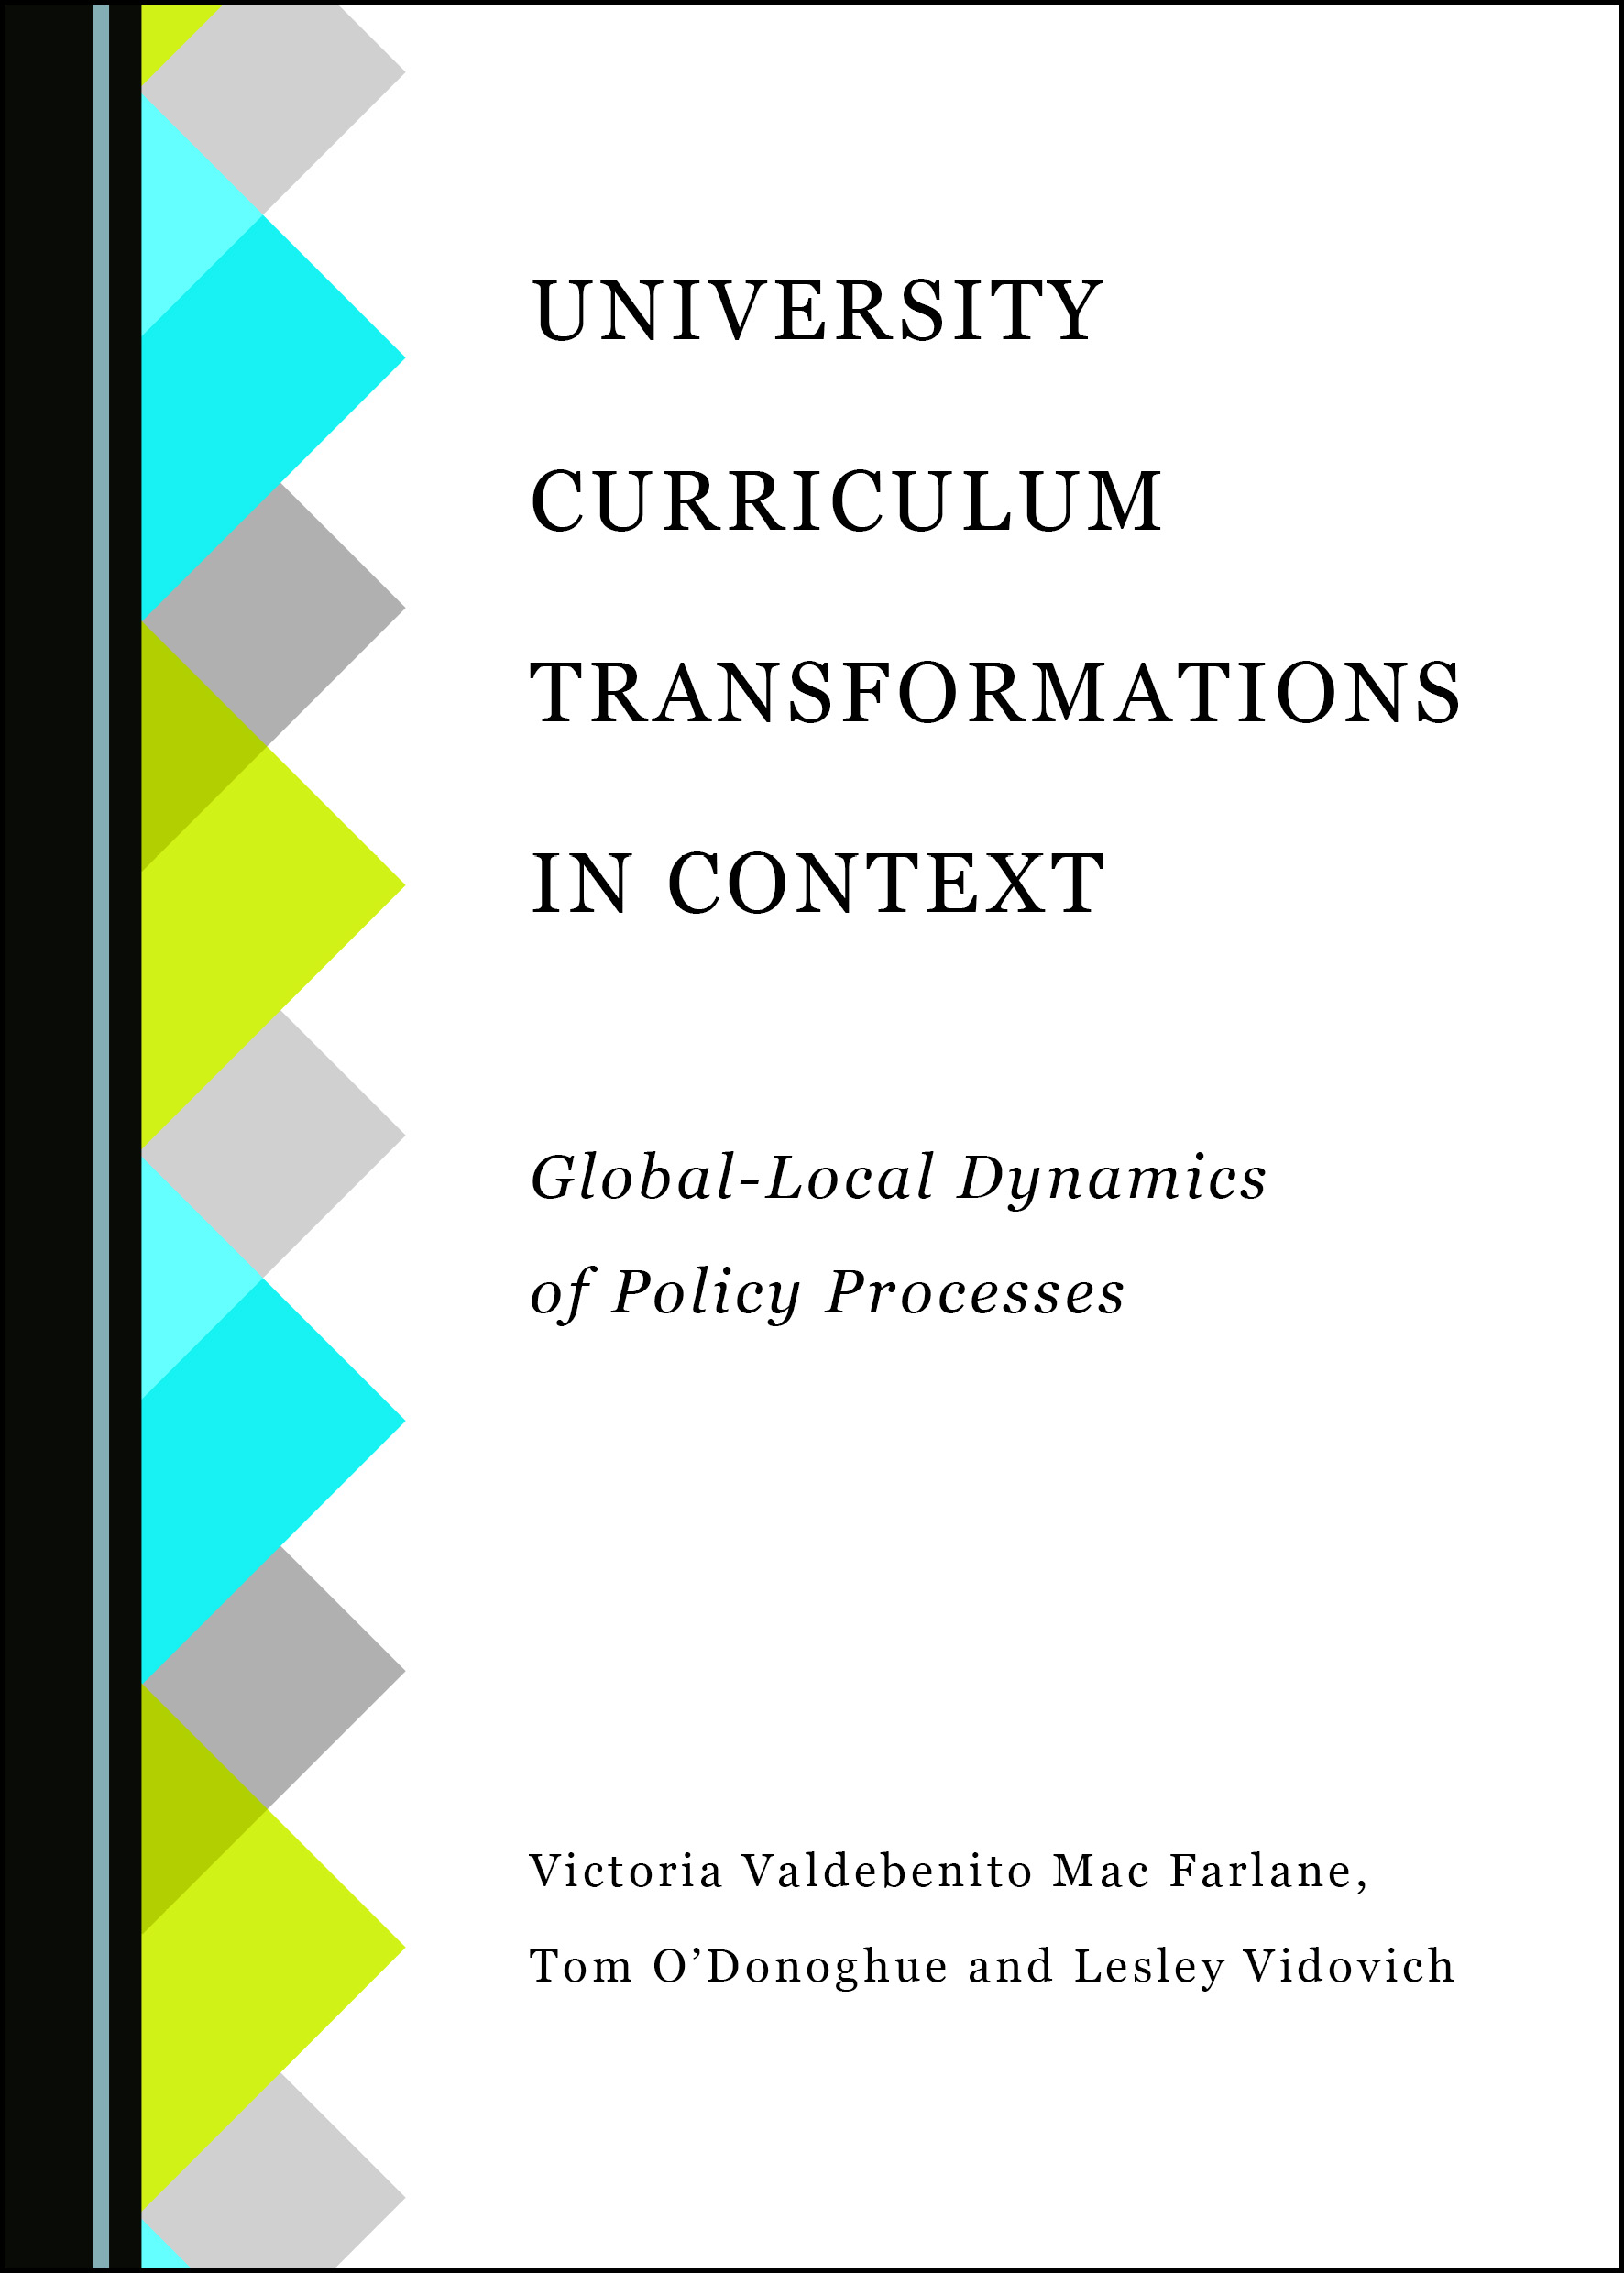 University Curriculum Transformations in Context: Global-Local Dynamics of Policy Processes